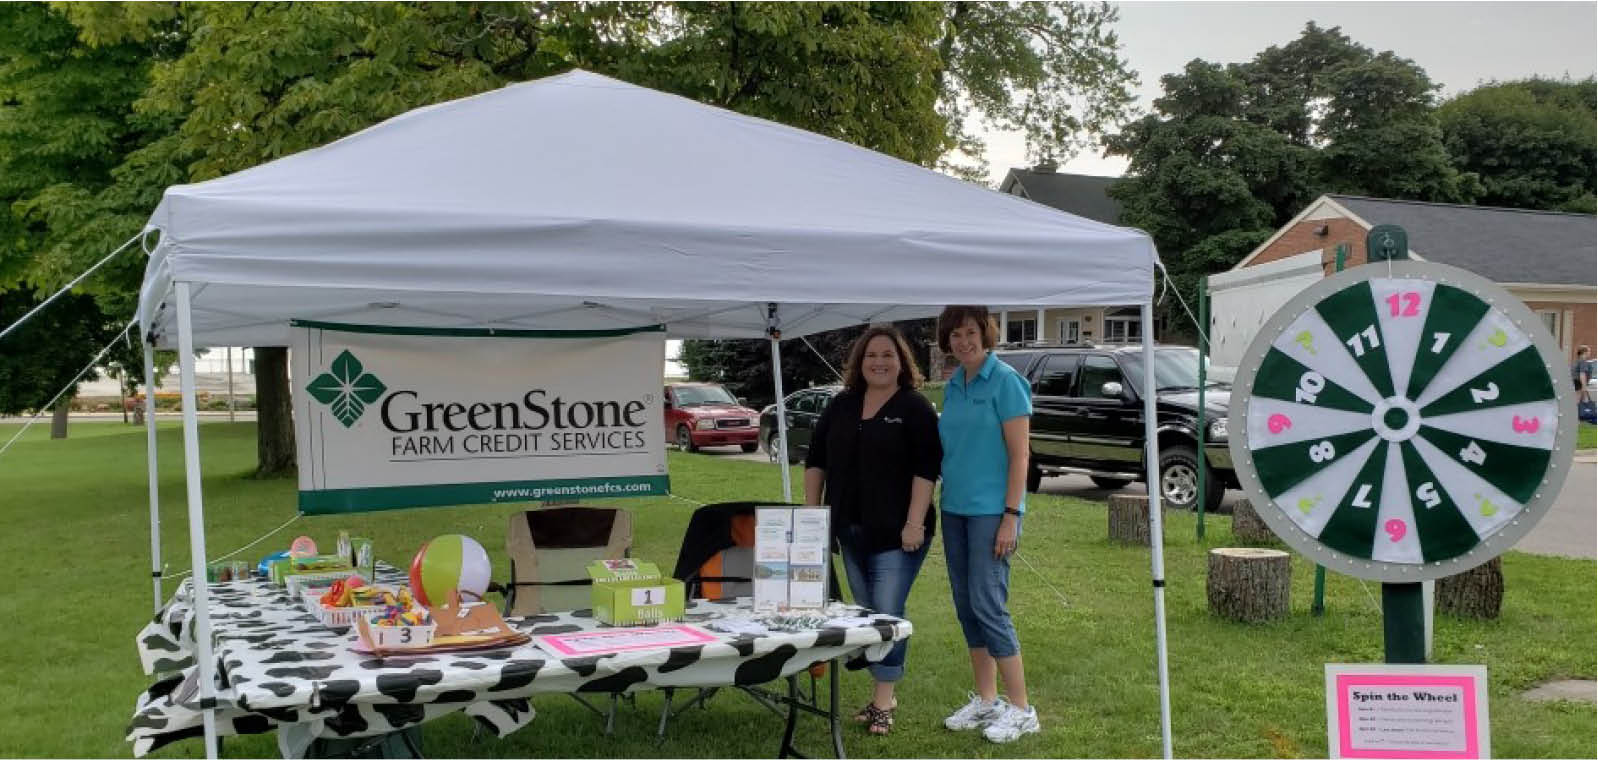 Two women outside GreenStone tent at AgVenture Day